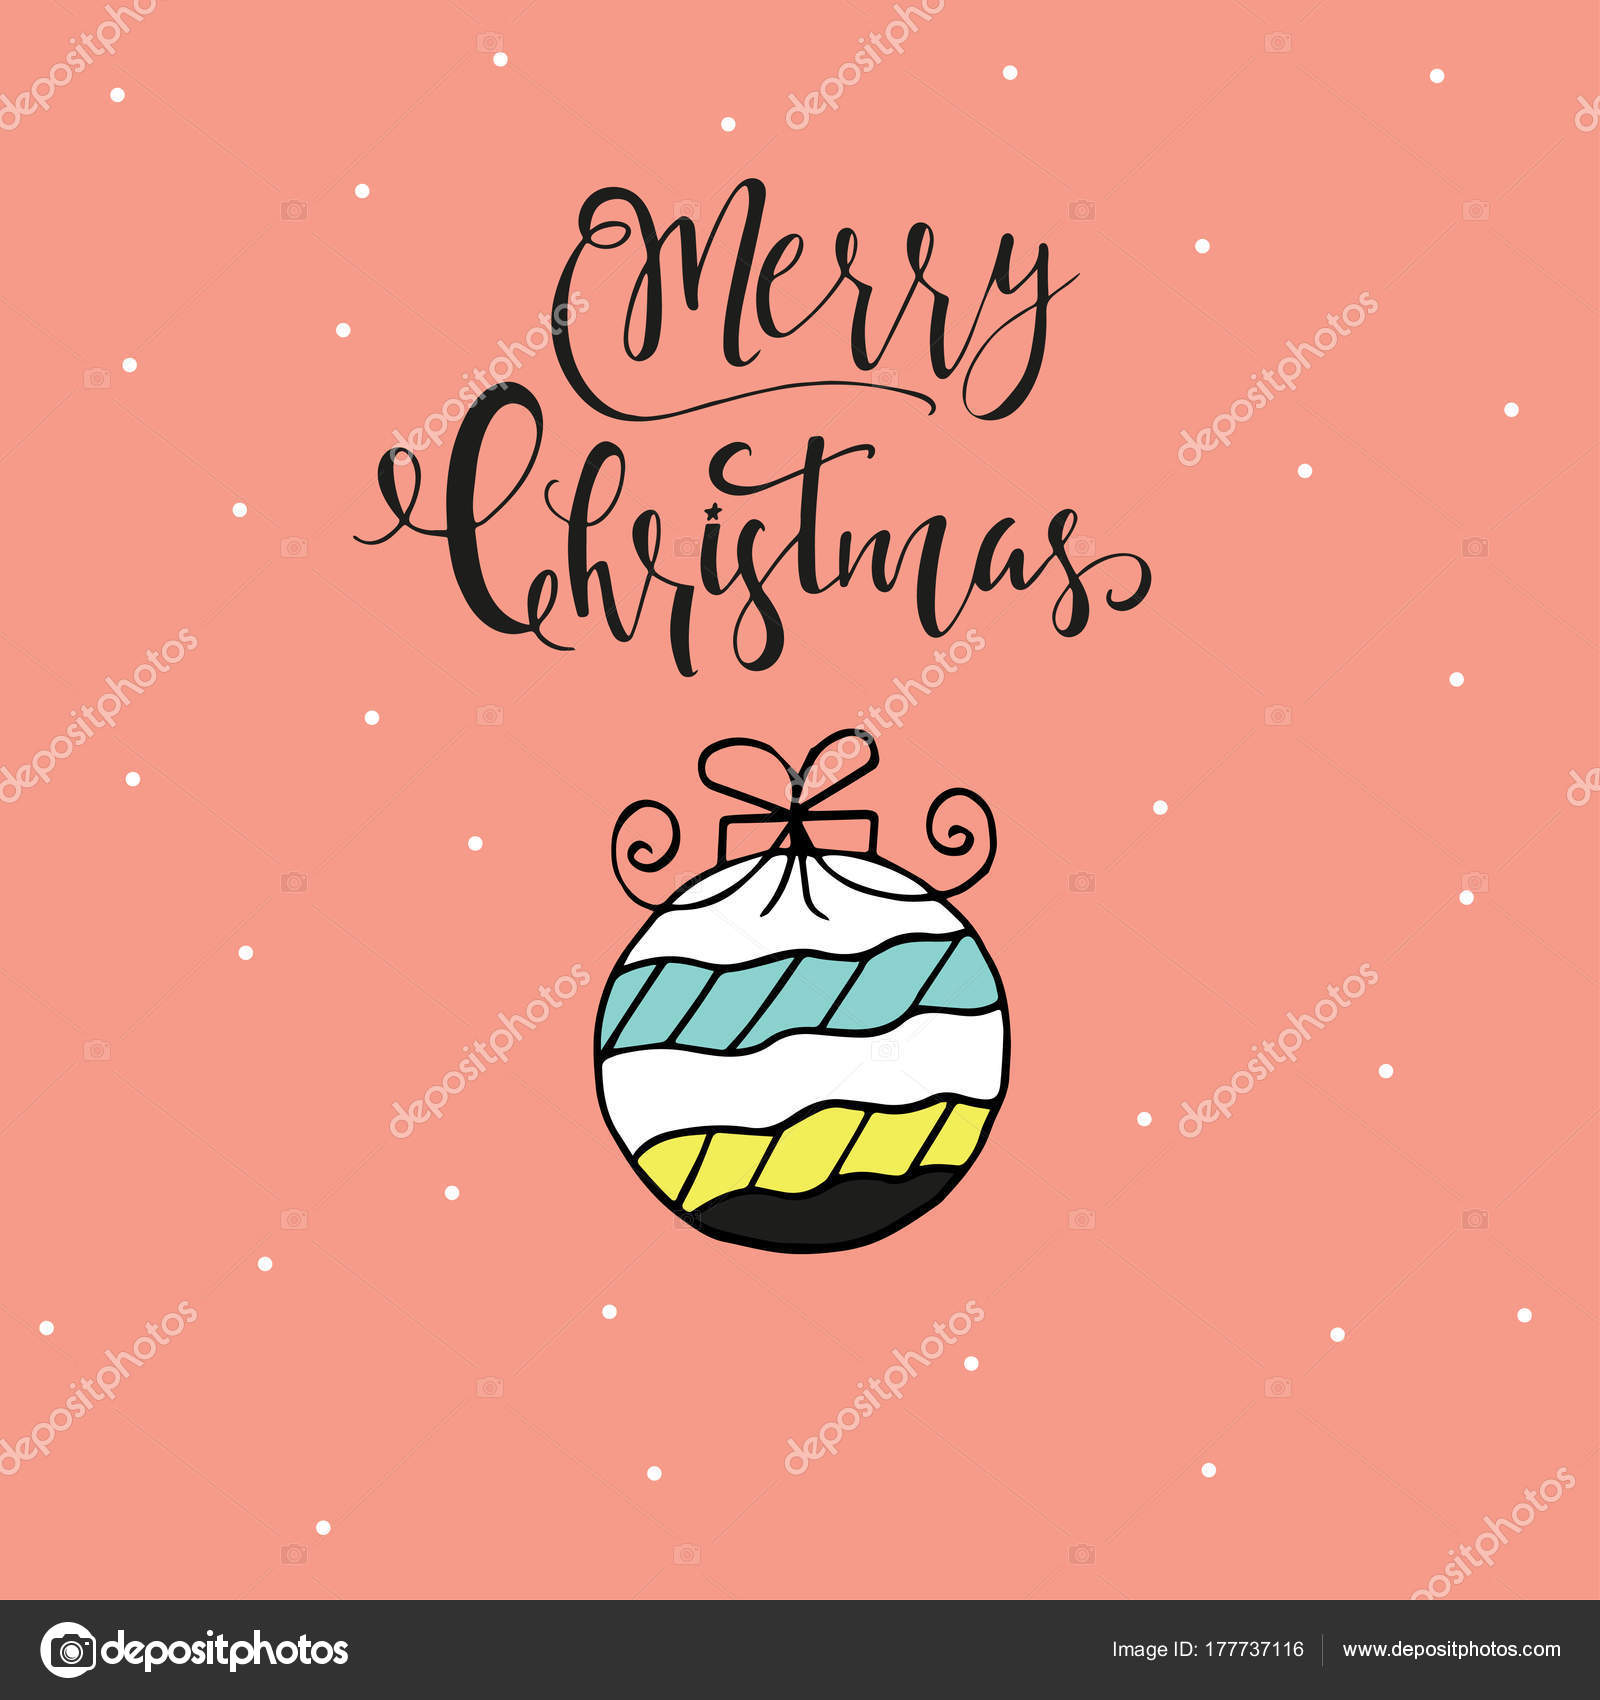 Merry Christmas Cute Greeting Card Hand Drawn Lettering Presents